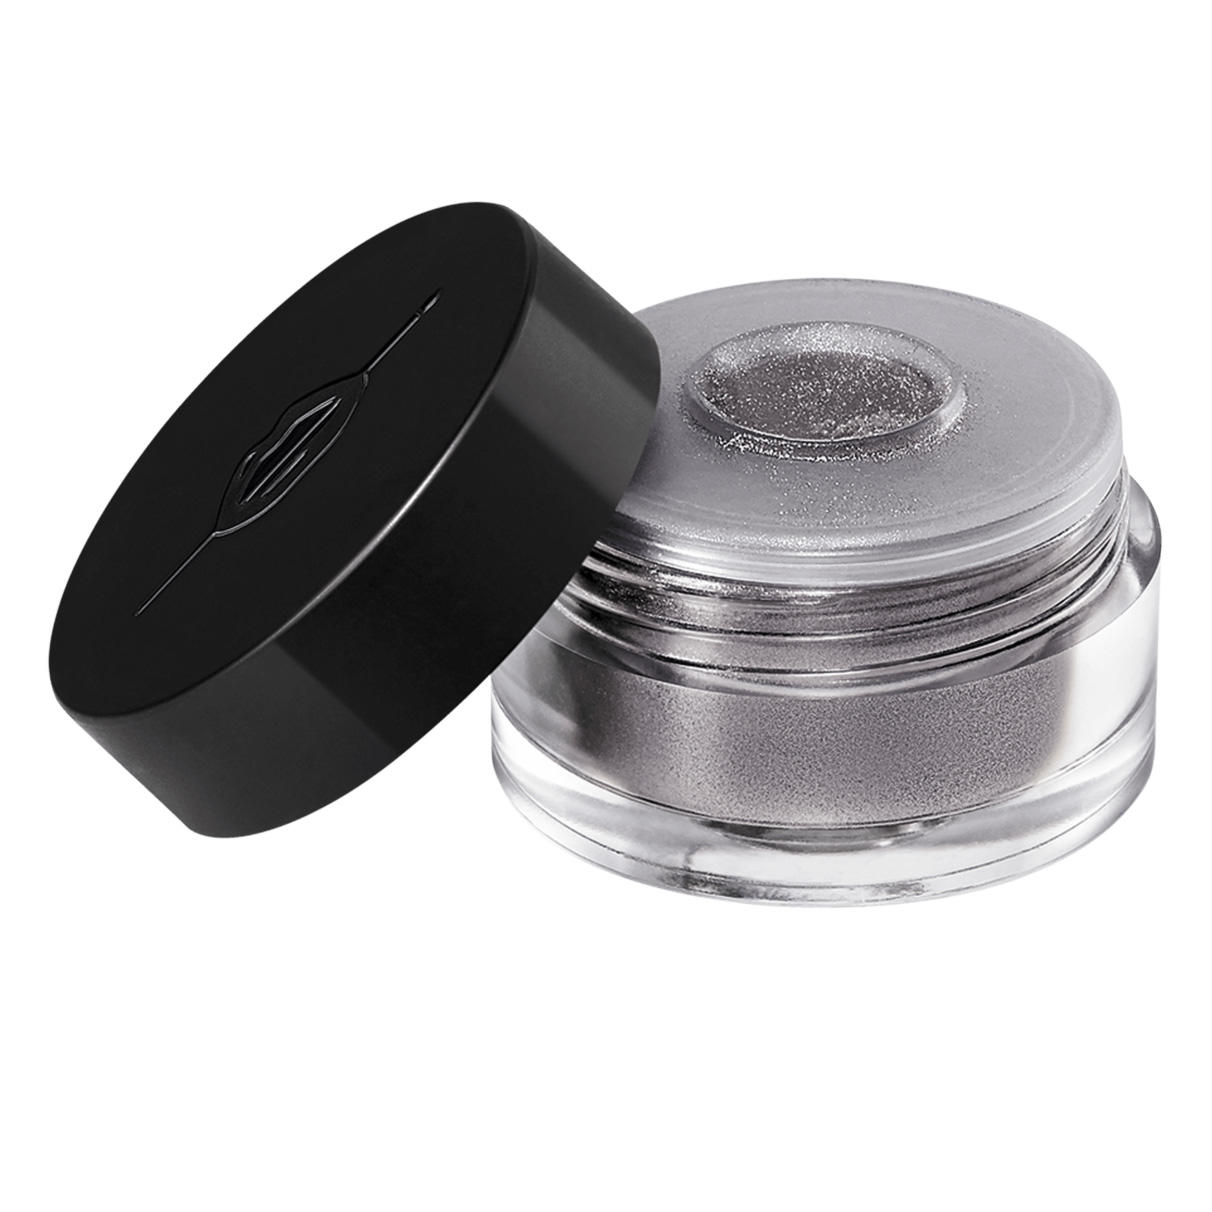 Makeup Forever Star Lit Powder Gunmetal 27